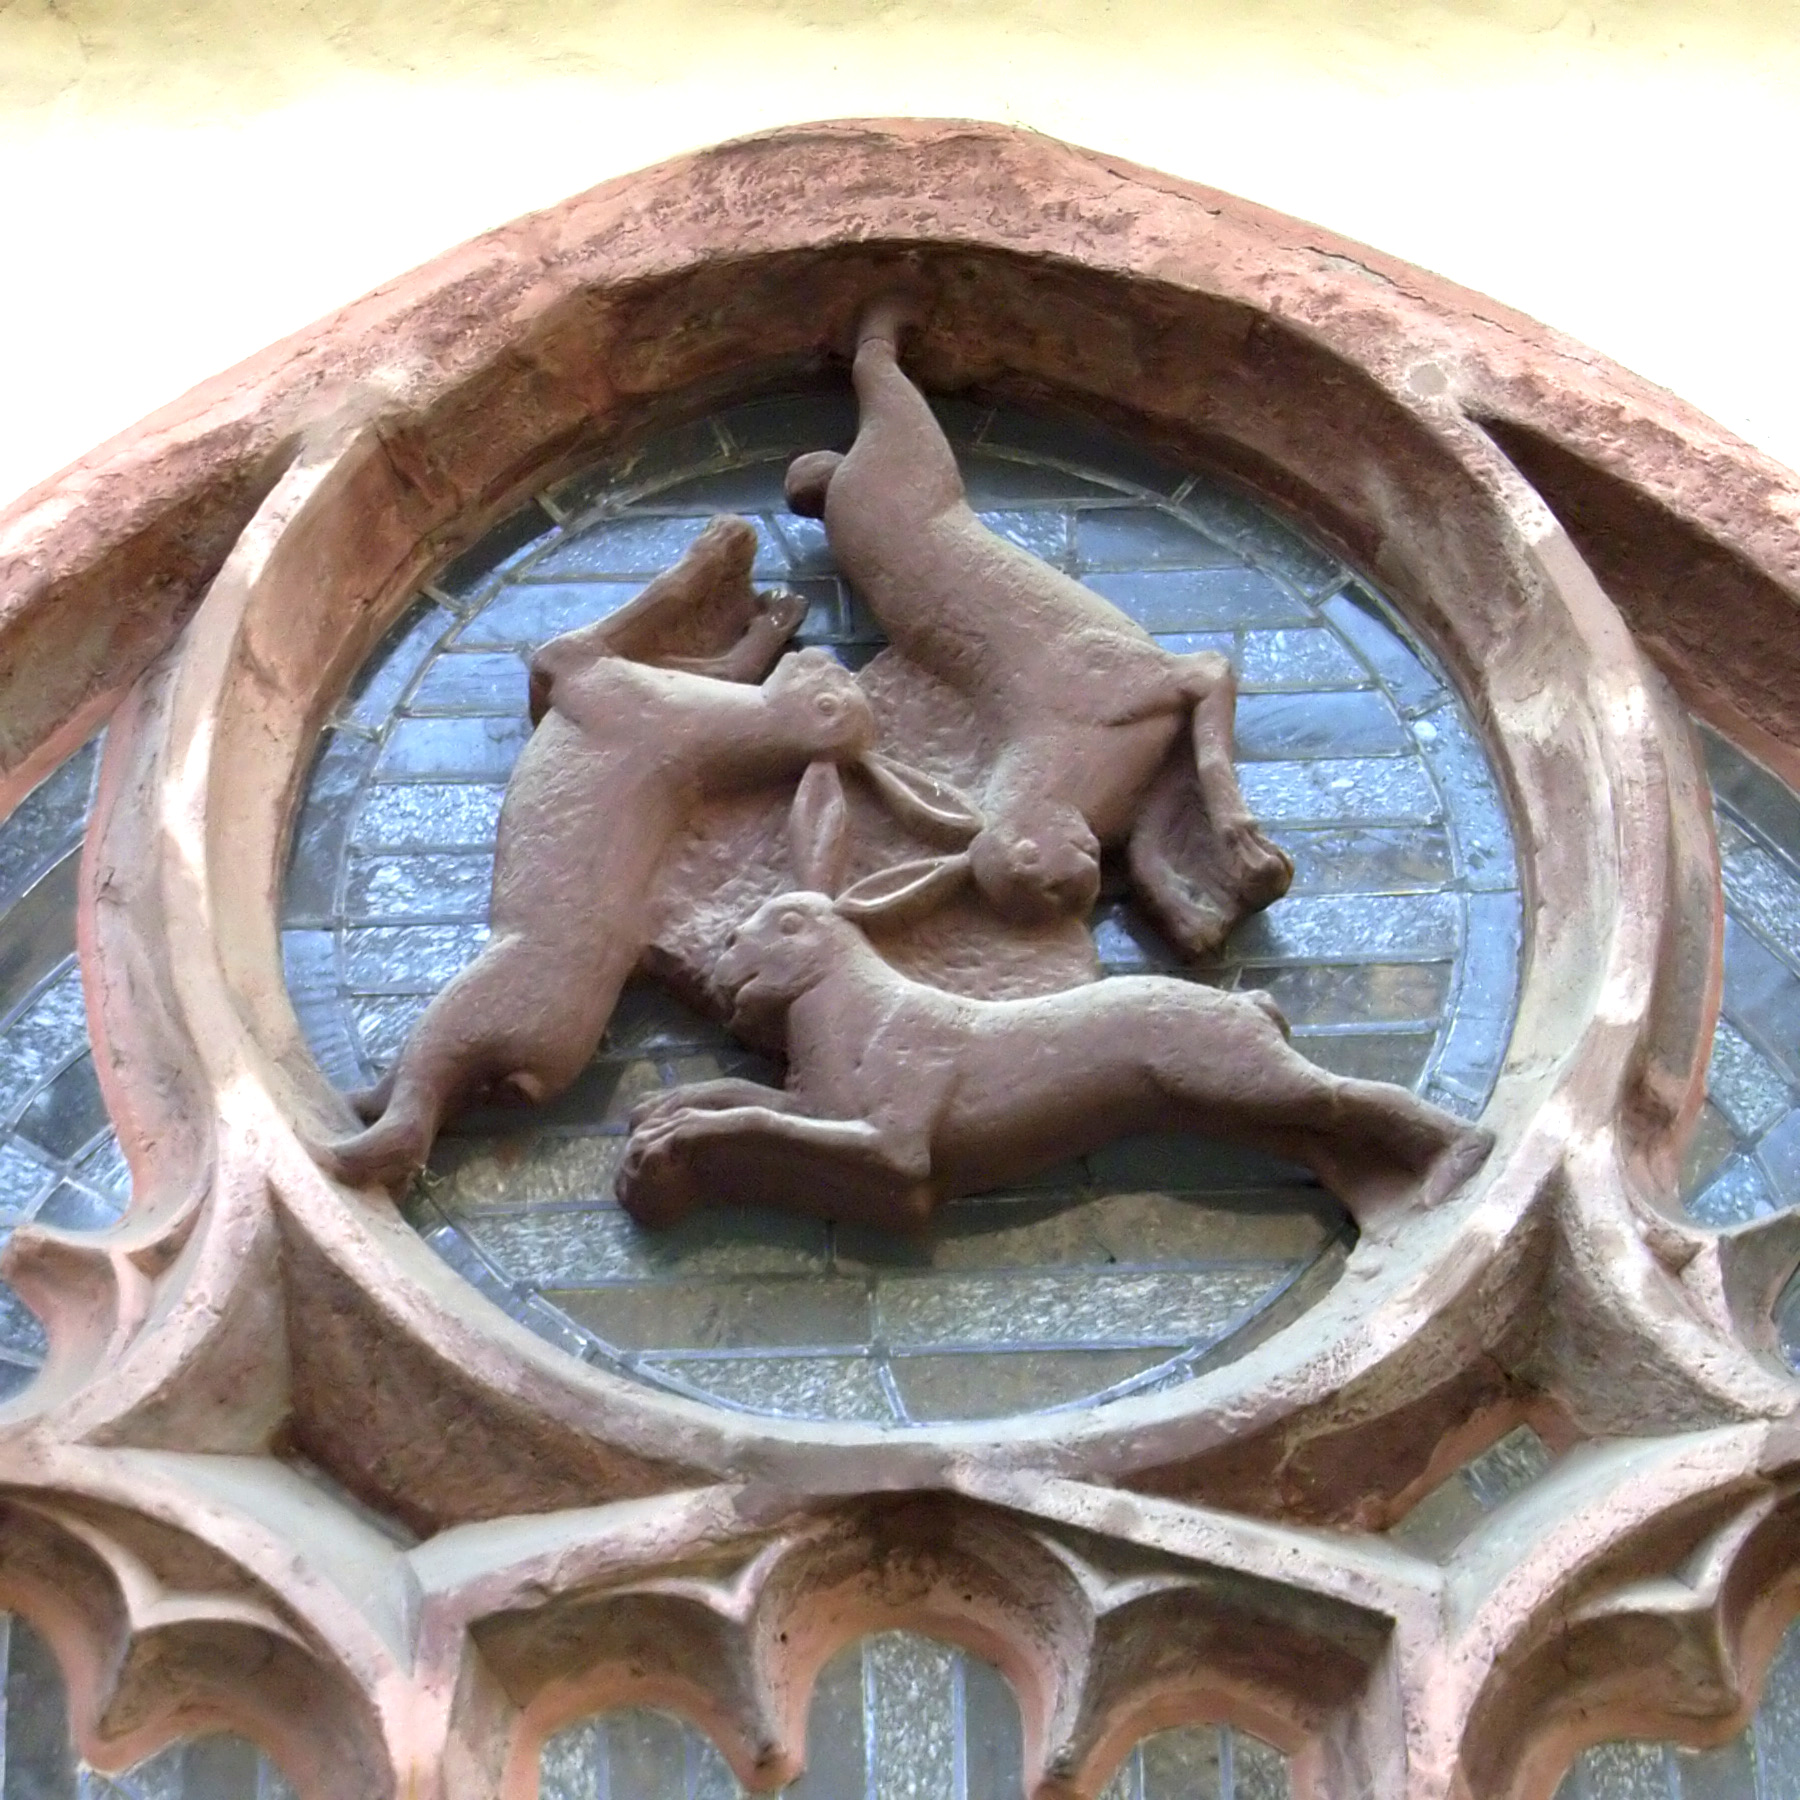 Ancient Symbols The Puzzle Of The Three Hares Under The Influence